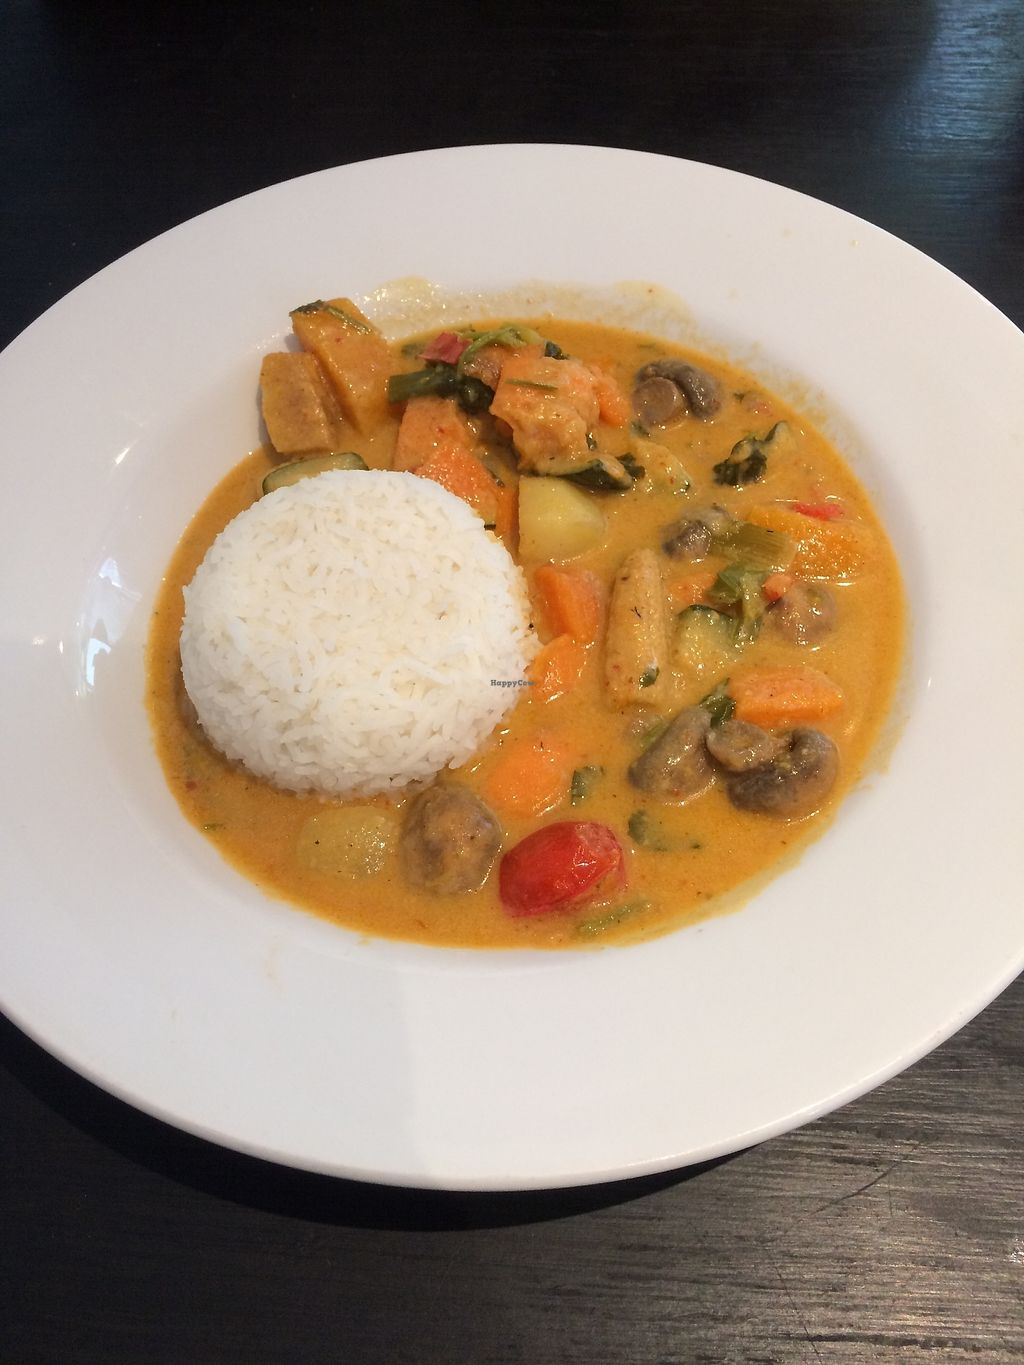 """Photo of Aingels Cafe Bistro  by <a href=""""/members/profile/xraysez"""">xraysez</a> <br/>Thai curry.  <br/> August 25, 2017  - <a href='/contact/abuse/image/73642/296939'>Report</a>"""